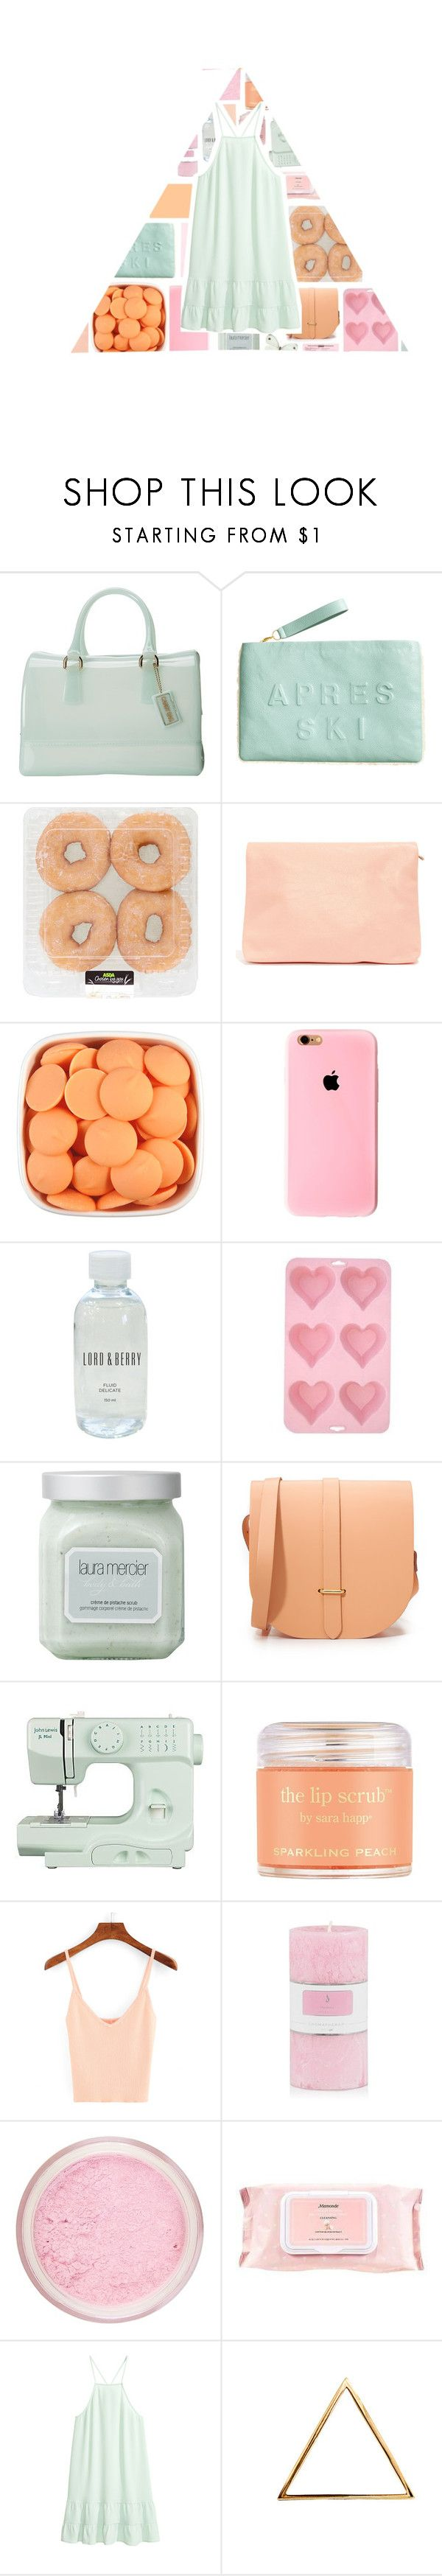 """""""Lovely Summer Pastels"""" by stelbell ❤ liked on Polyvore featuring Furla, H&M, Lord & Berry, CO, Laura Mercier, The Cambridge Satchel Company, John Lewis, Sara Happ, Mamonde and Glenda López"""